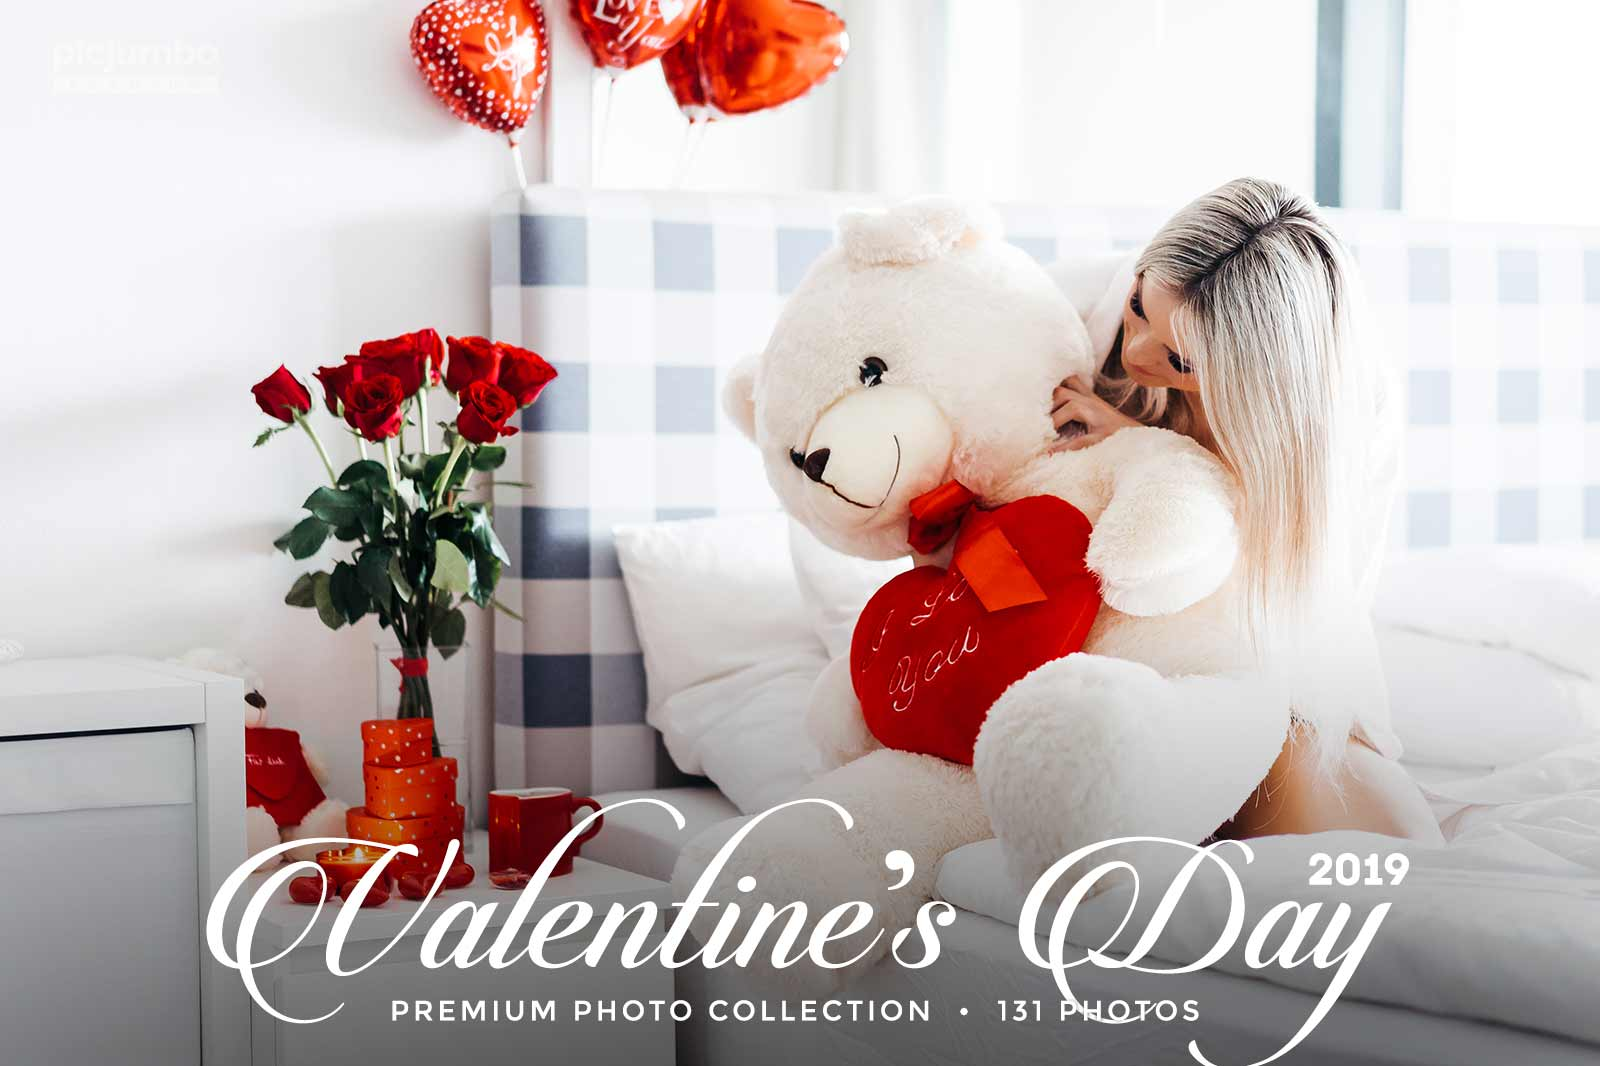 Valentine's Day 2019 stock photo collection